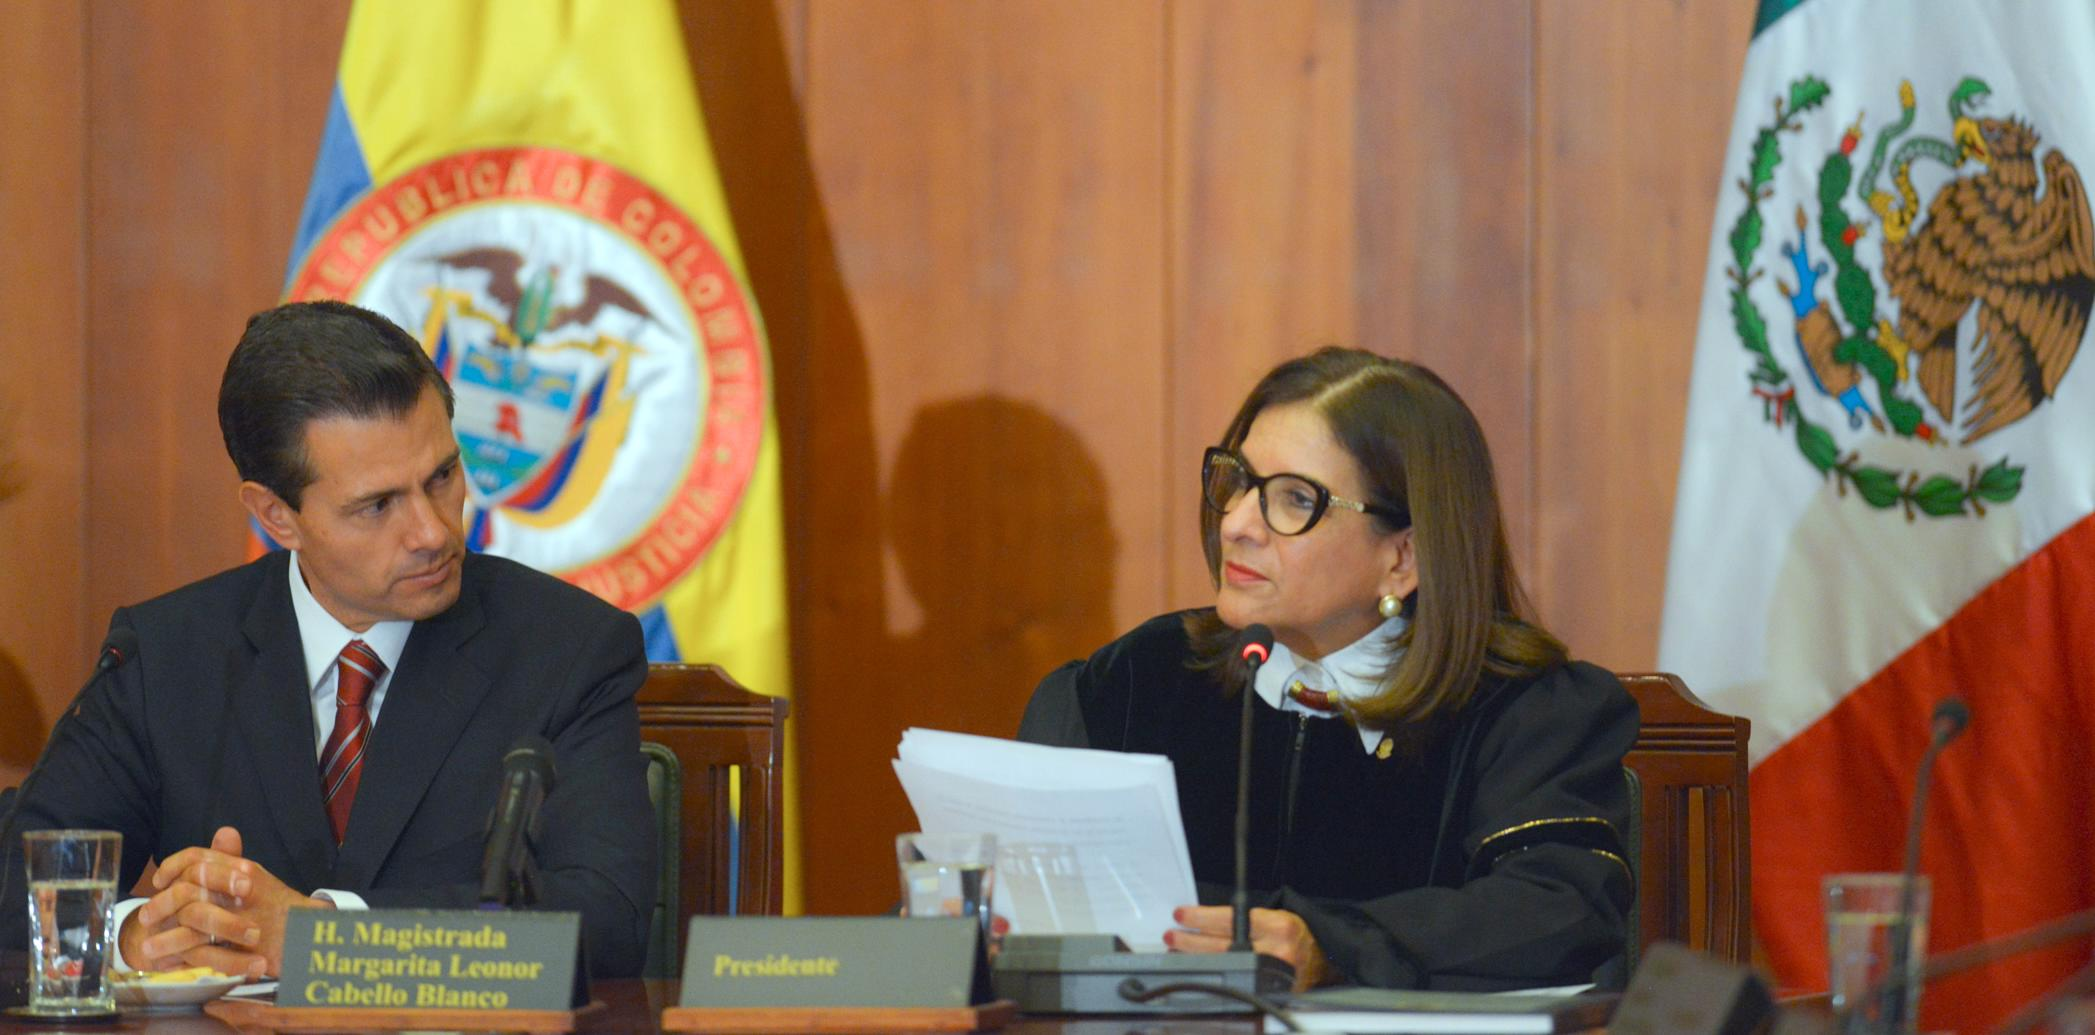 The president stressed that Mexico and Colombia have had mutual learning that has improved the administration of justice.